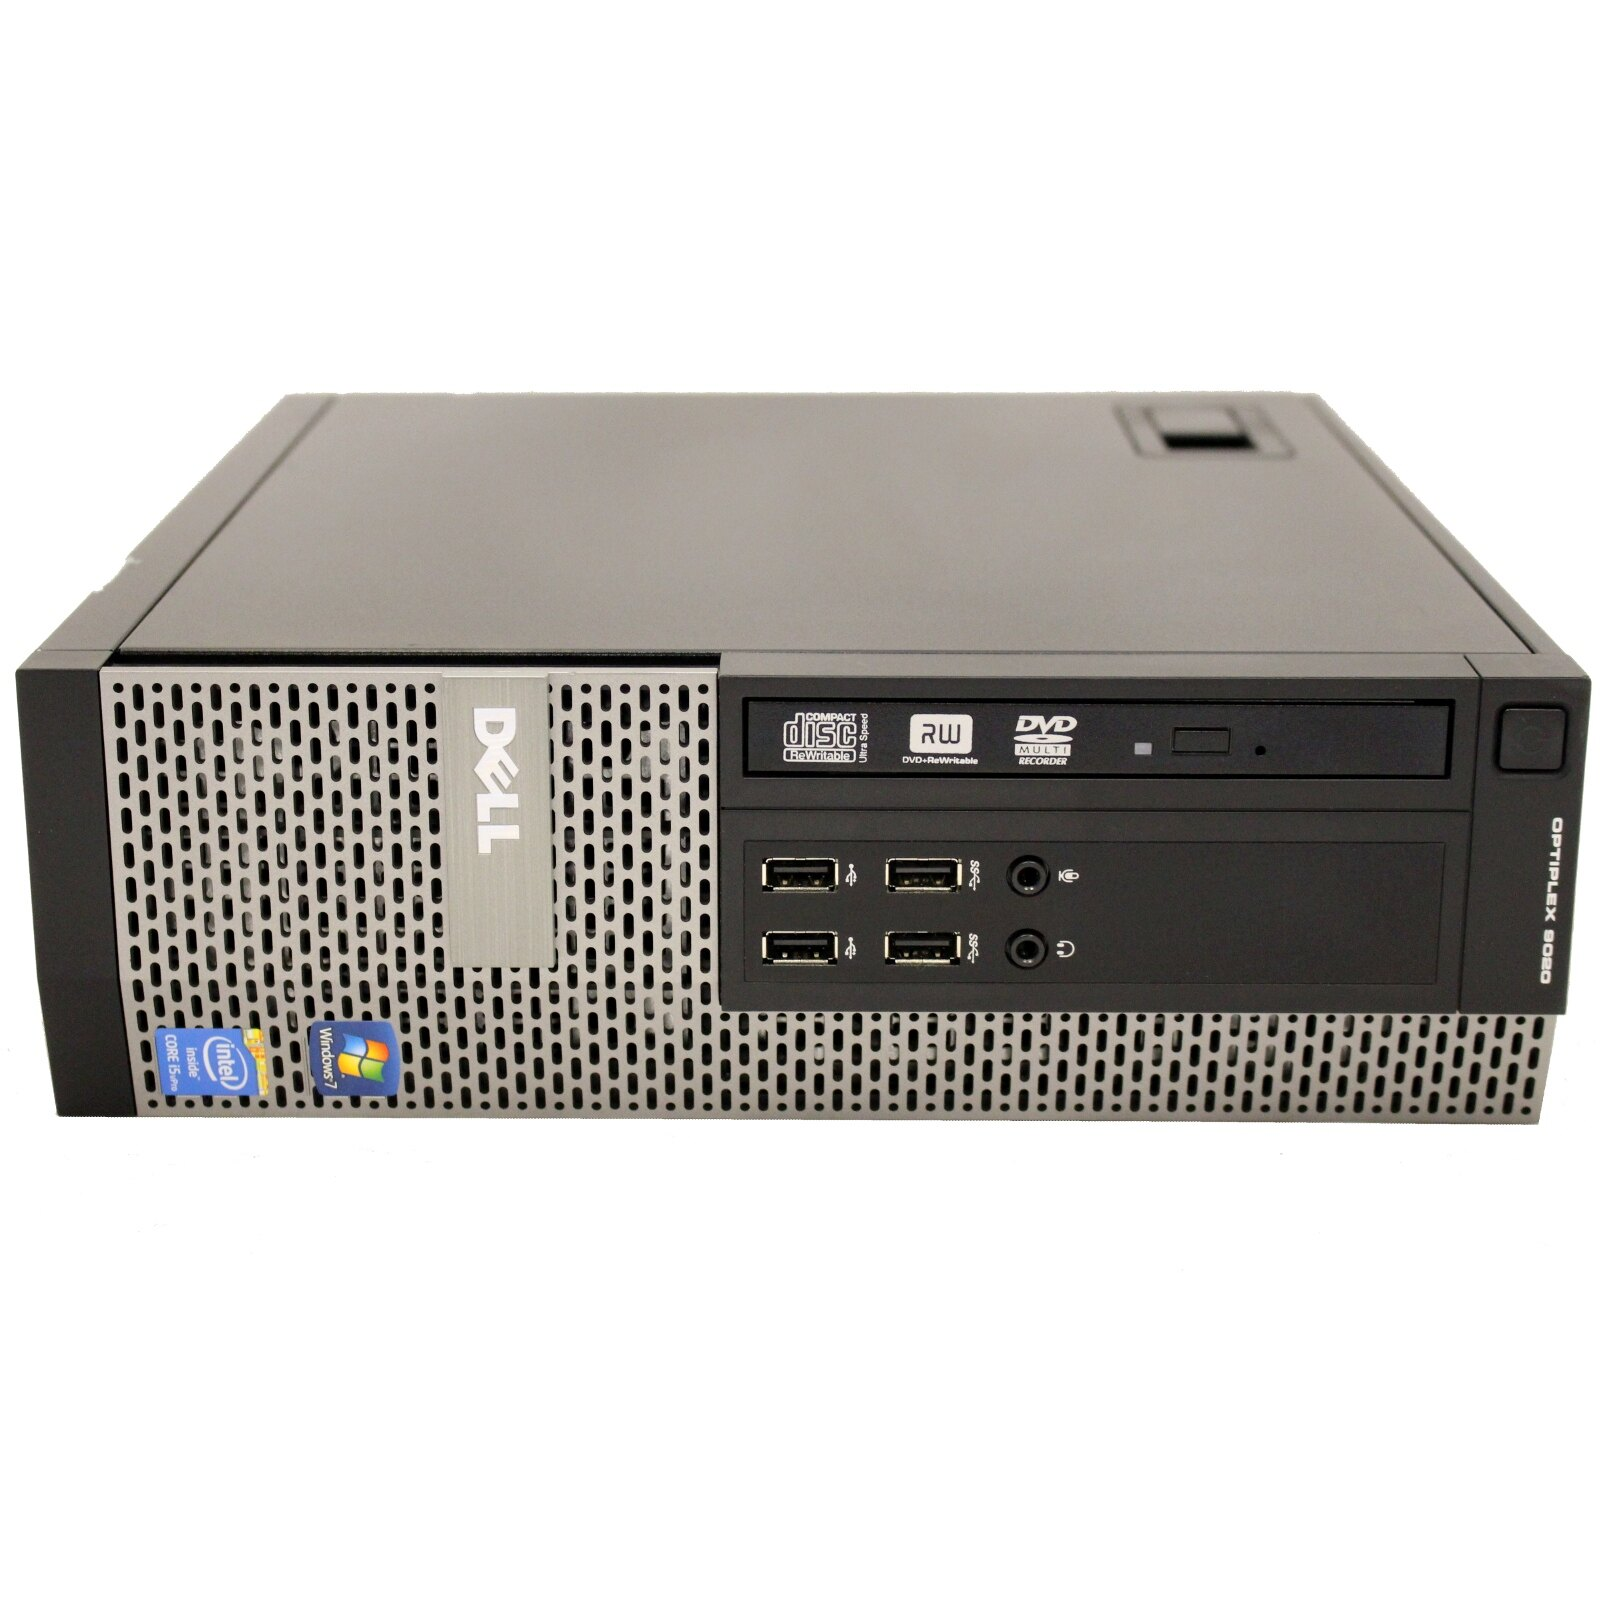 Dell OptiPlex 9020 SFF Desktop Intel 4th Gen  Quad Core i7-4770 3 40GHz  32GB DDR3 500GB HD DVD-RW Windows 10 Pro